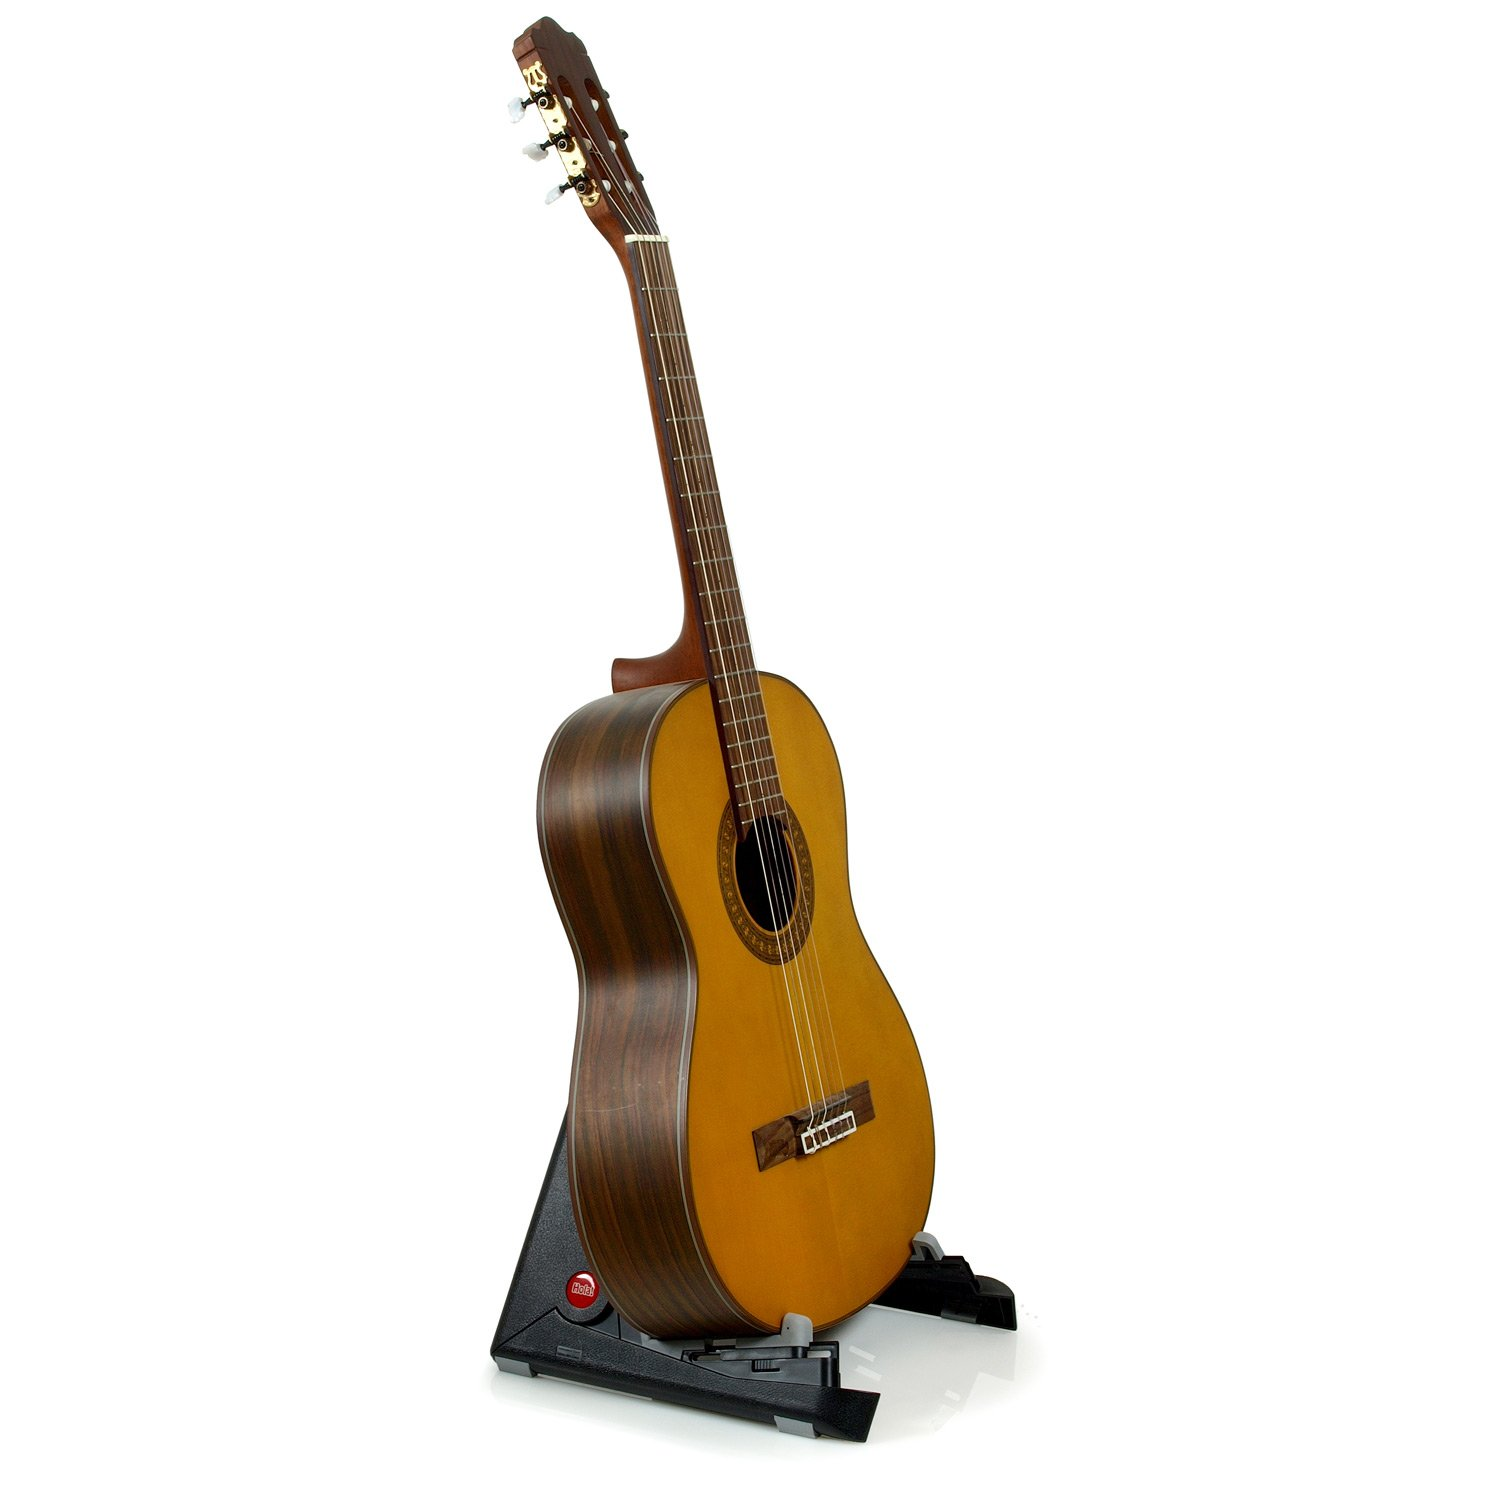 Portable Stand for Acoustic and Classical Guitars by Hola! Music